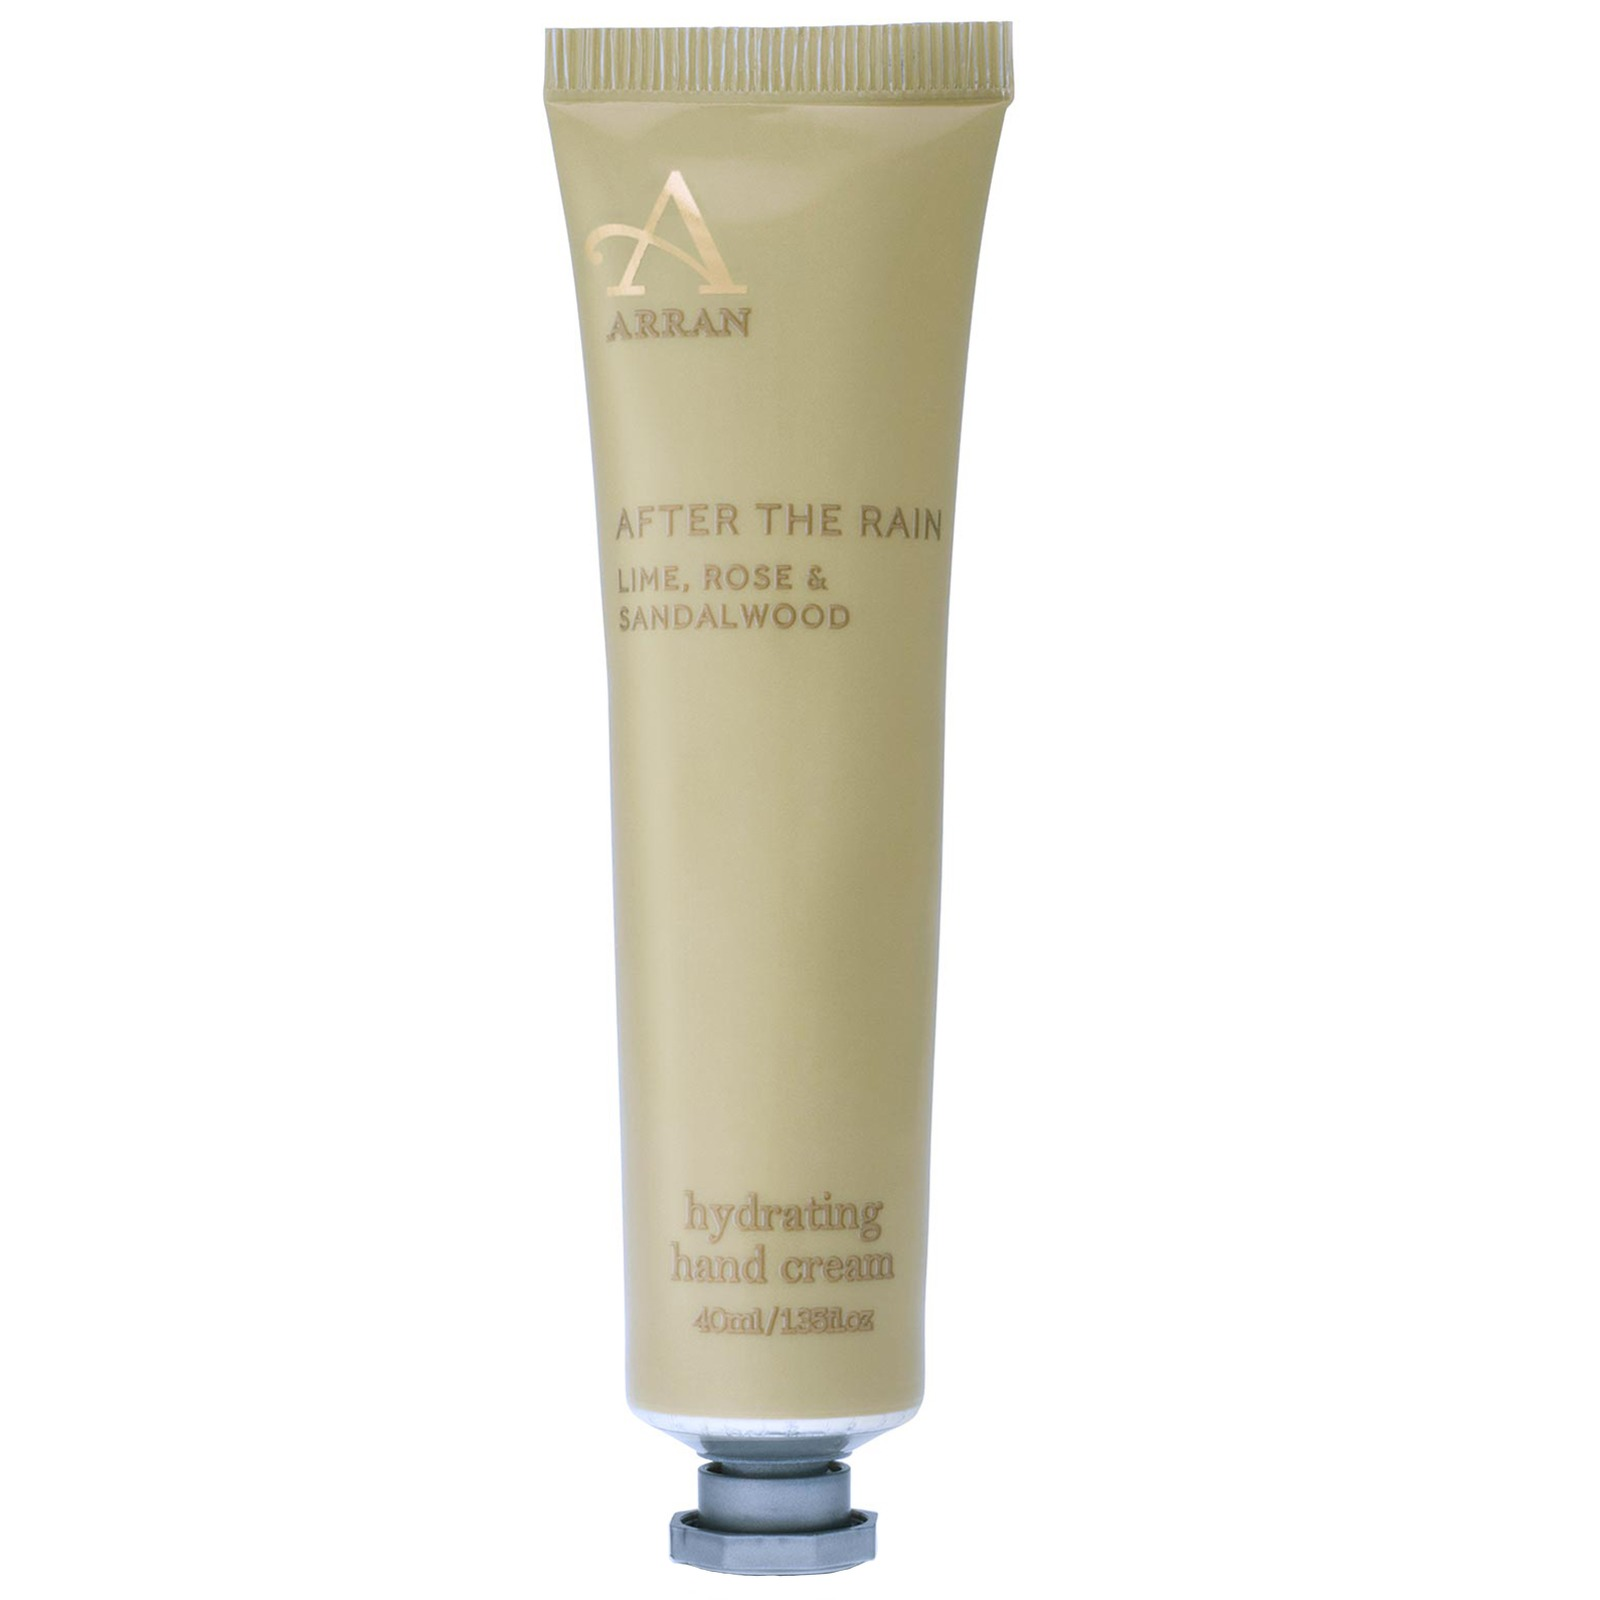 ARRAN Sense of Scotland After The Rain - Lime, Rose, & Sandalwood Hydrating Hand Cream 40ml